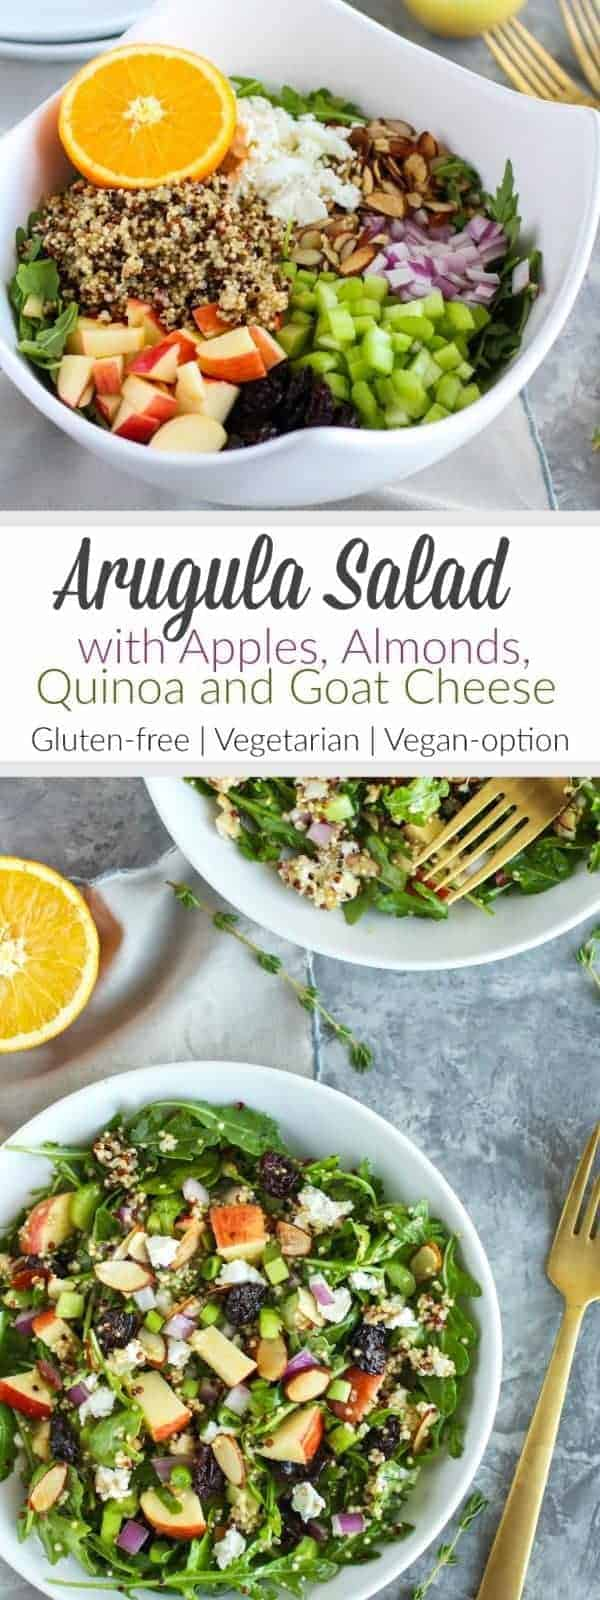 This Arugula Salad combines crisp apples, toasted almonds, hearty quinoa, creamy goat cheese, tart dried cherries and tossed in a delicious citrus vinaigrette | Gluten-free | Vegetarian | Vegan Optional | therealfoodrds.com